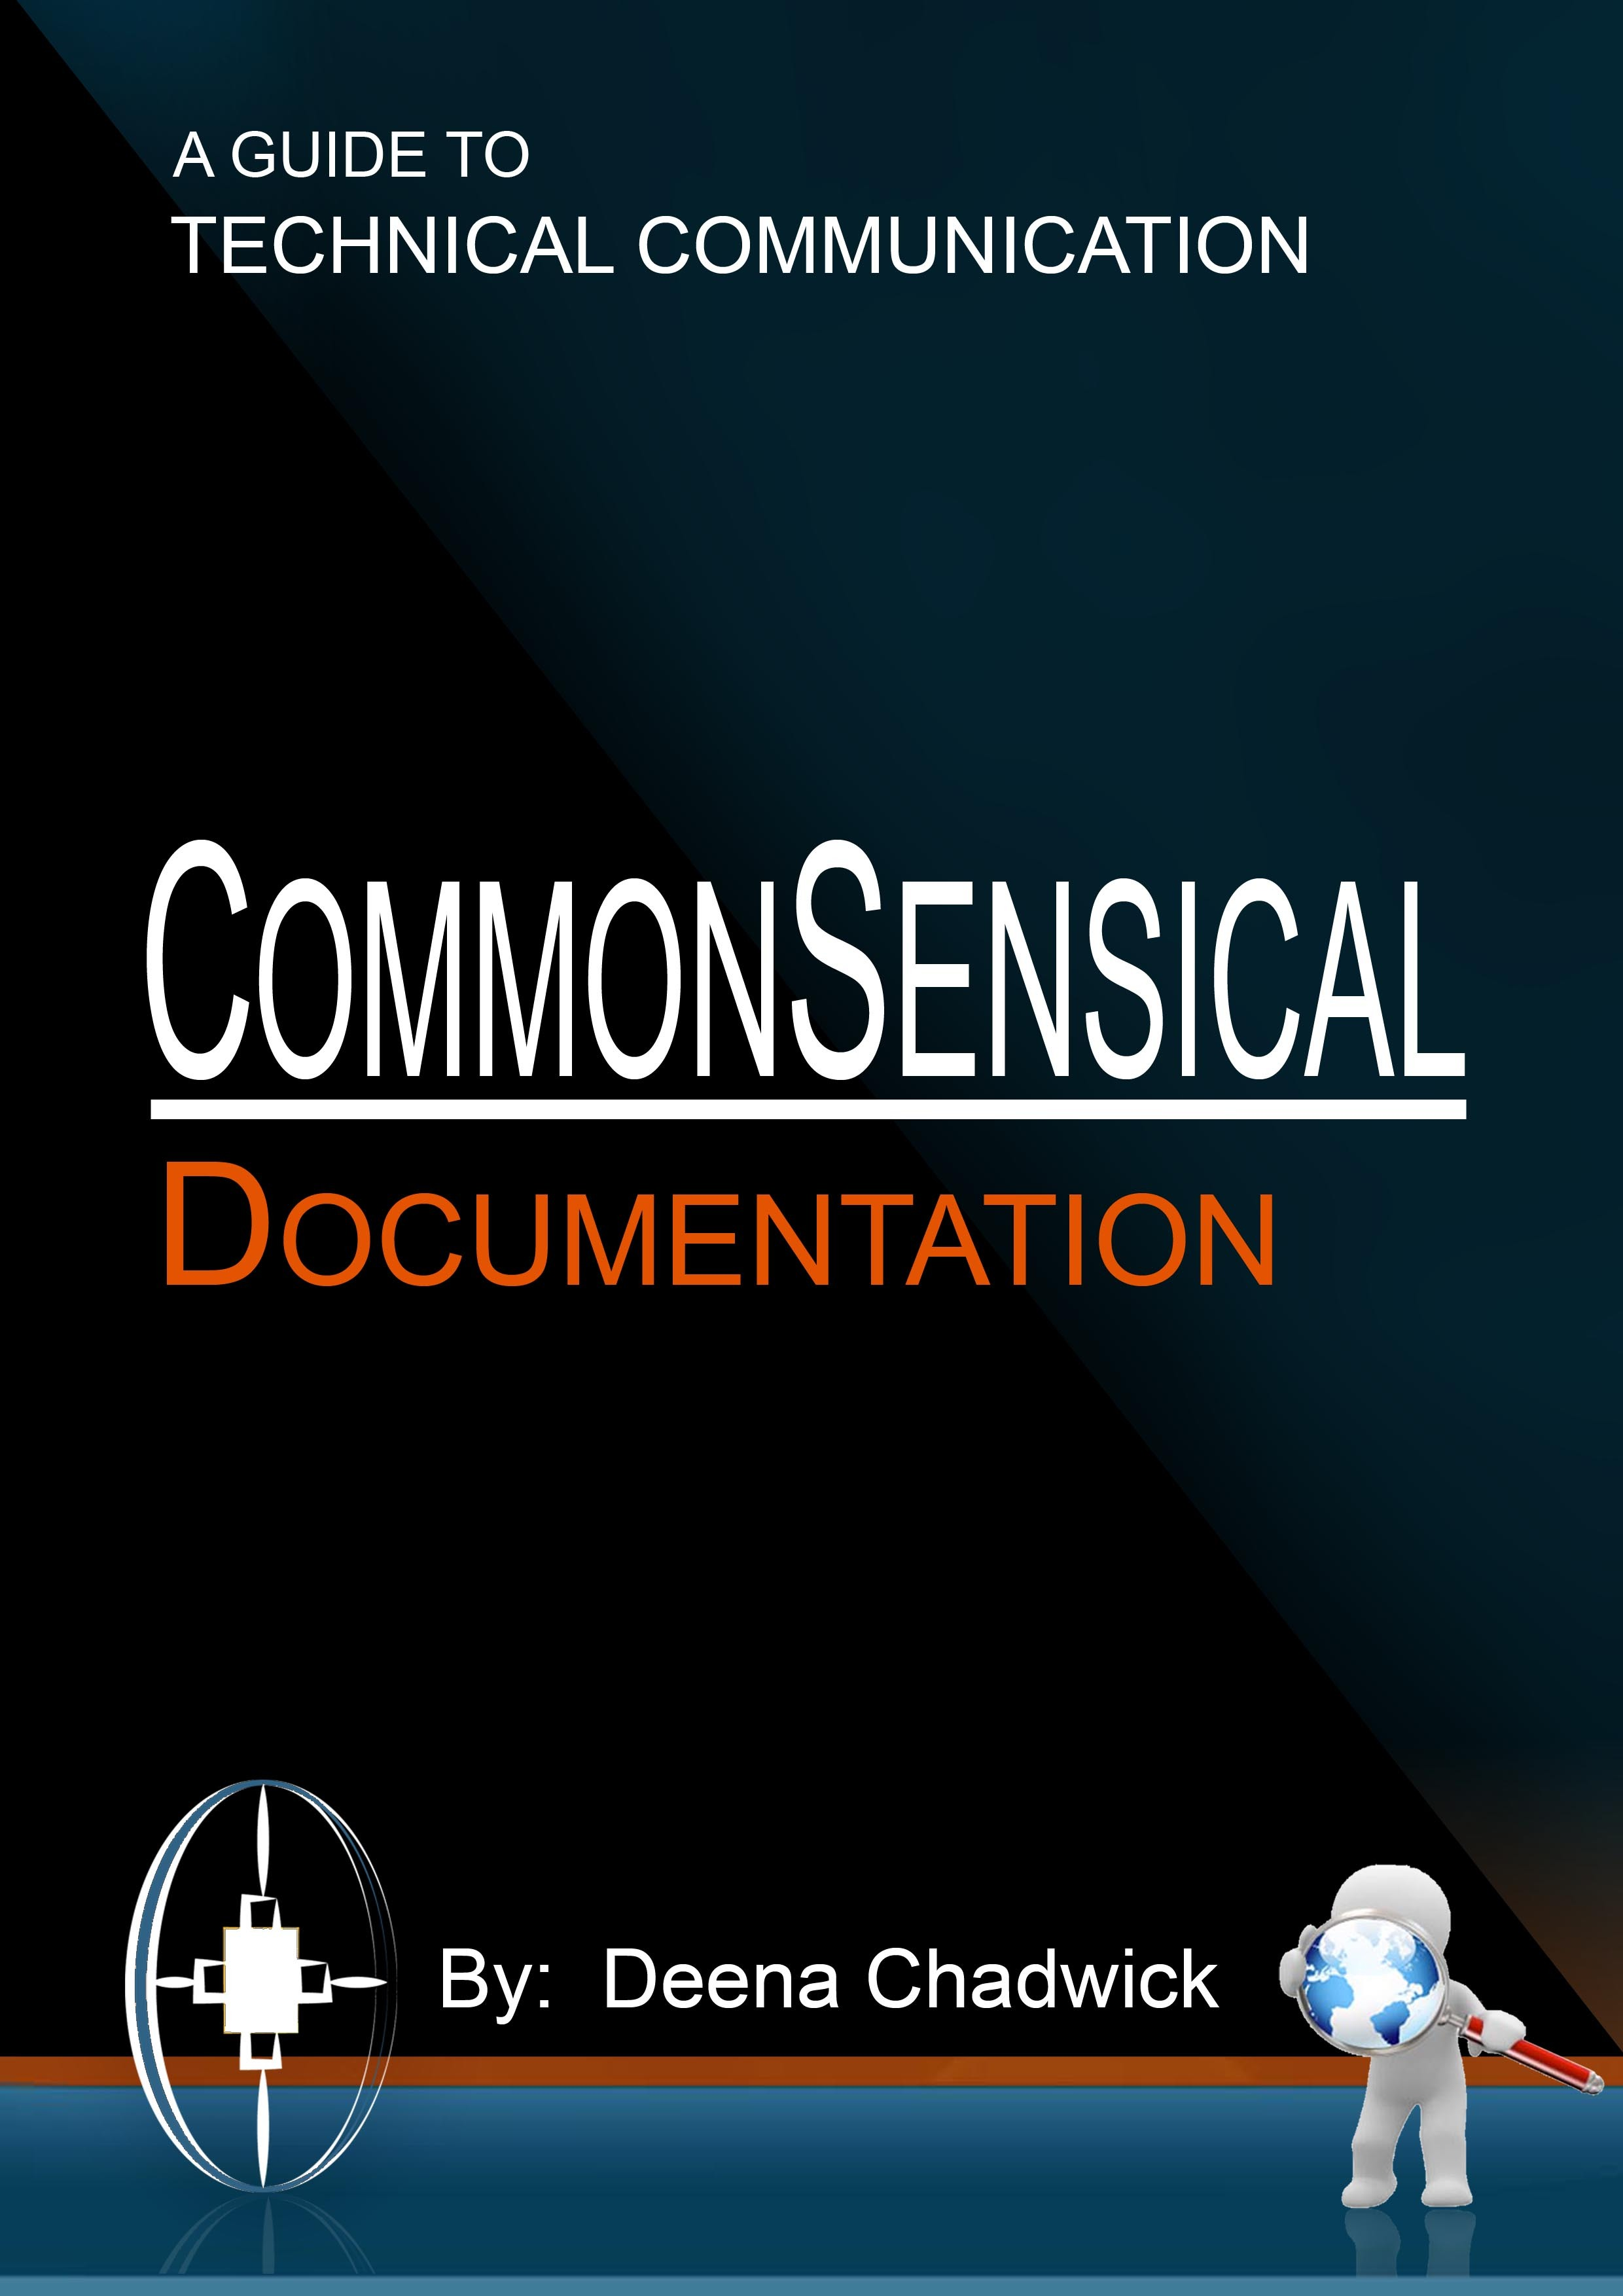 Commonsensical Documentation